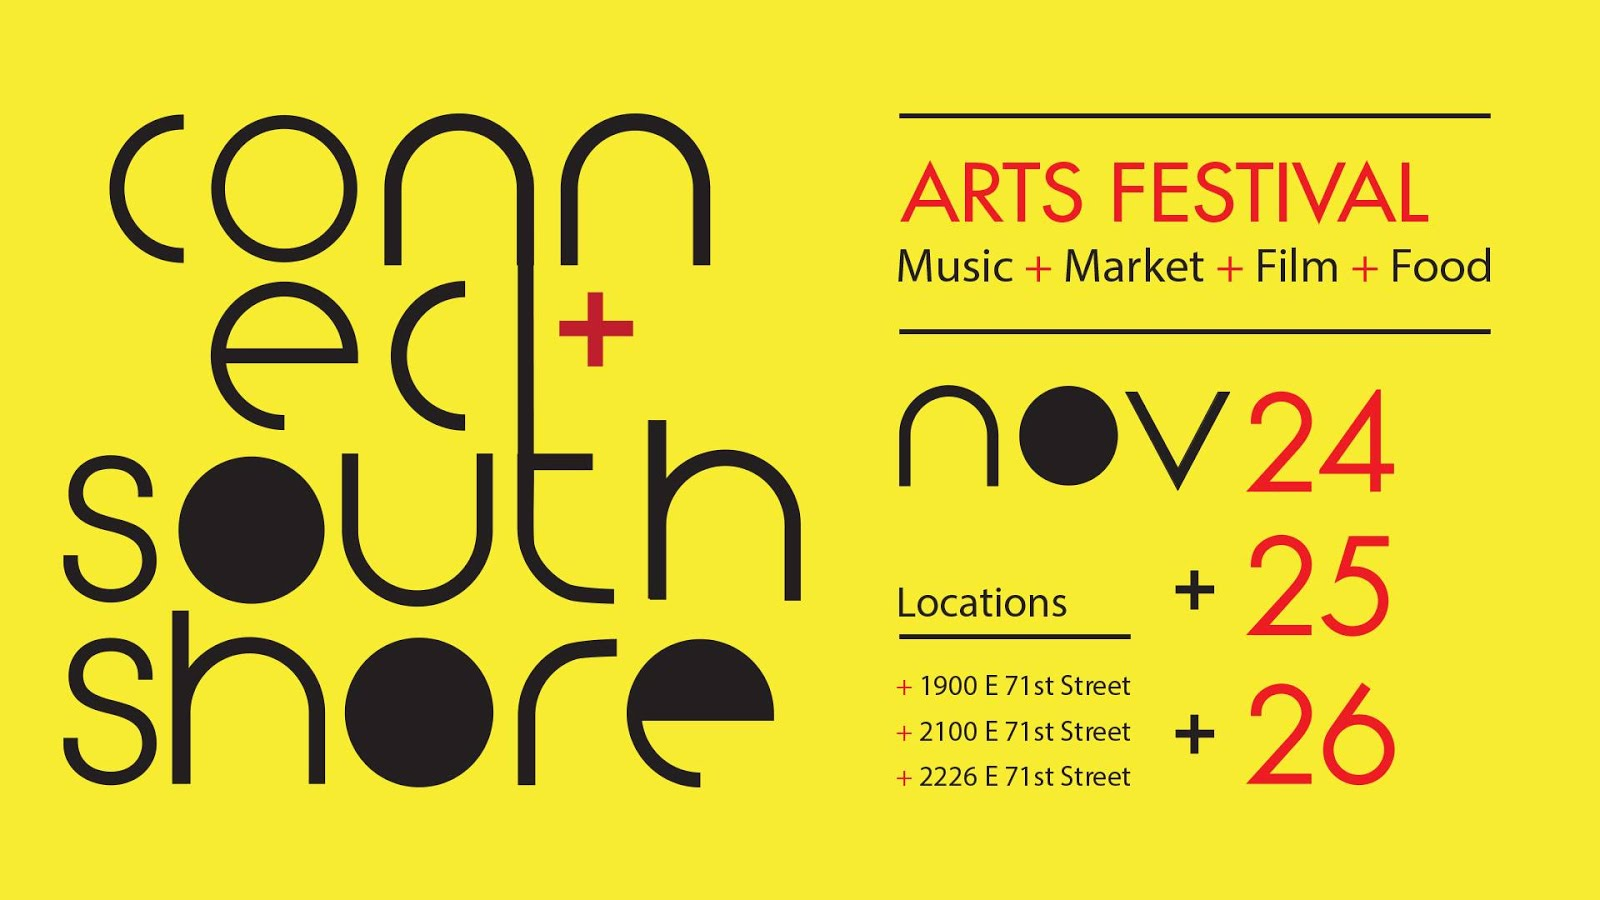 November 24, 25, 26: Connect South Shore Arts Festival